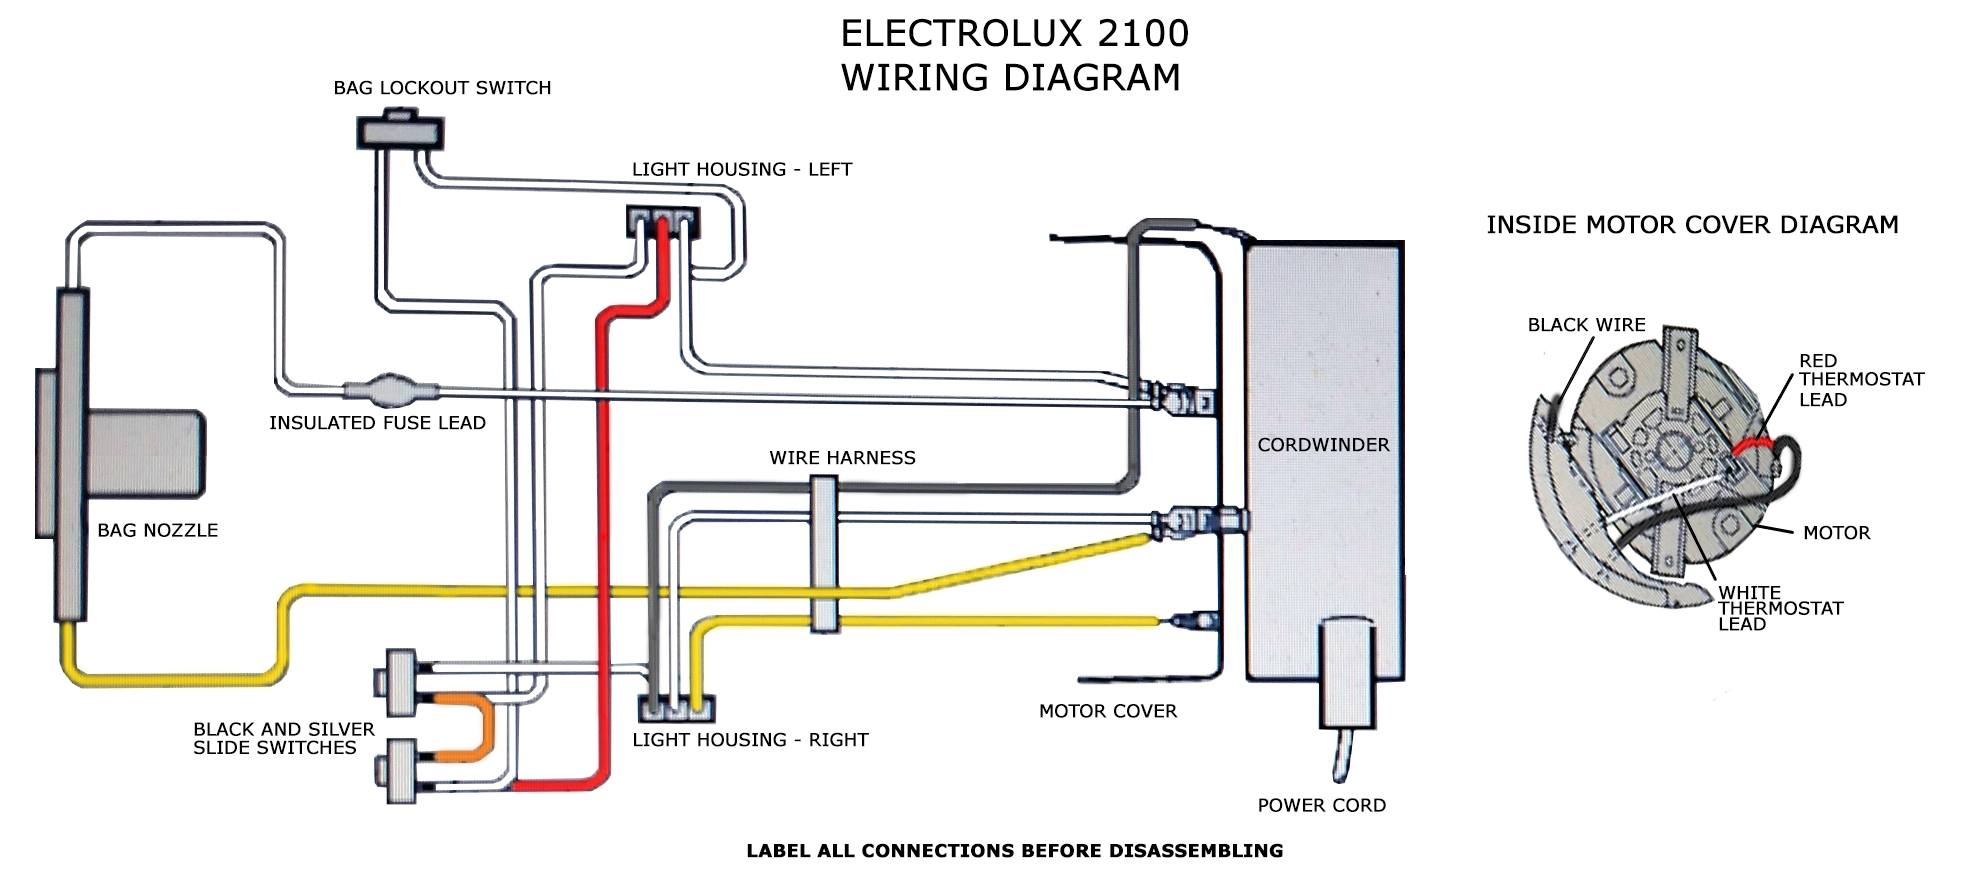 2100 wiring diagram miele vacuum wiring diagram osram wiring diagram \u2022 wiring diagram filter queen wiring diagram at panicattacktreatment.co